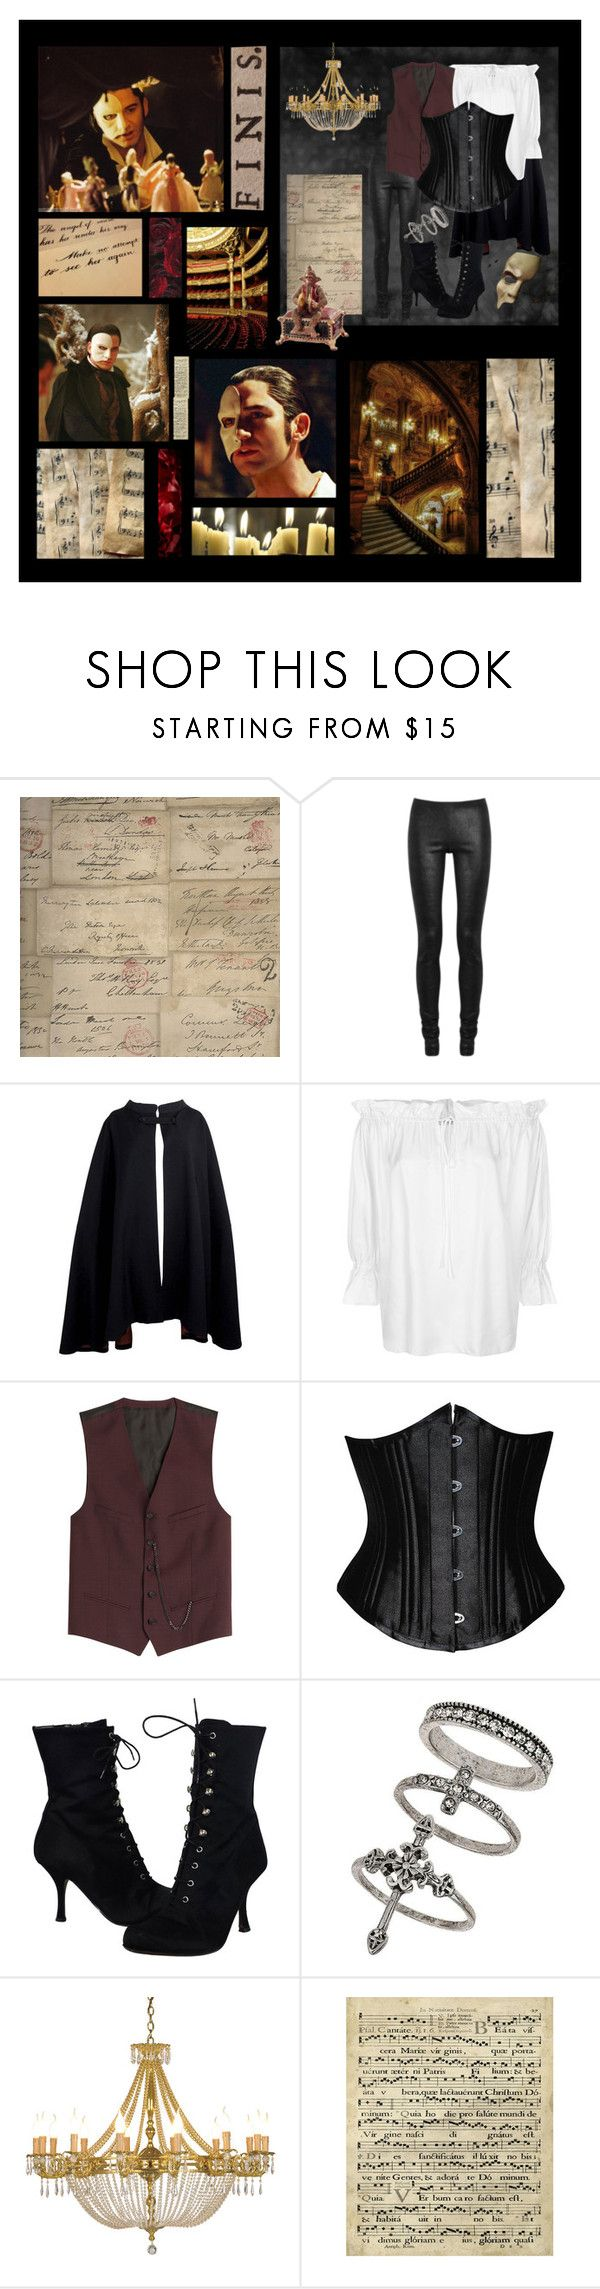 """Me in Phantom of the Opera (RTD)"" by xxstar-childxx ❤ liked on Polyvore featuring Andrew Martin, Rick Owens, Pierre Cardin, Temperley London, The Kooples, Donald J Pliner, Miss Selfridge and Art Classics"